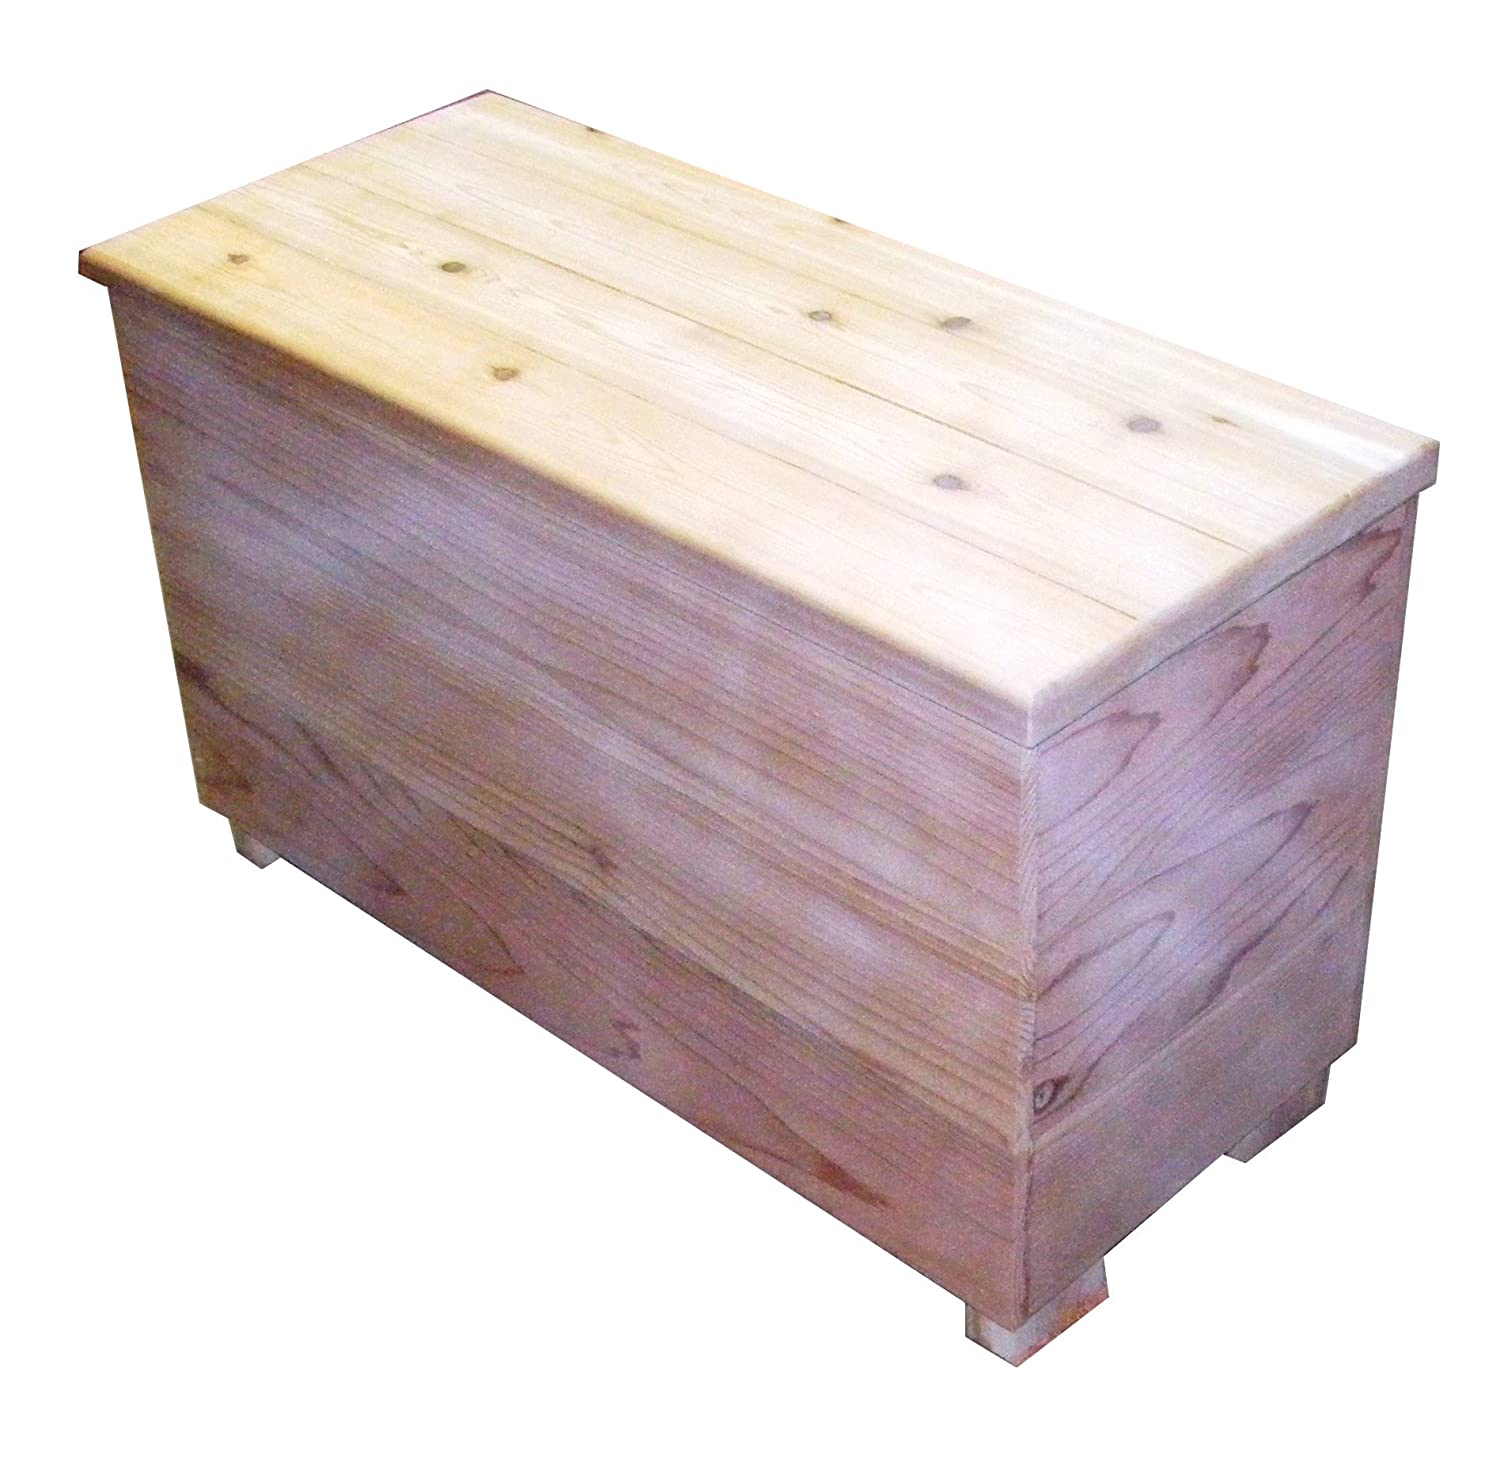 Amazon.com : Cedar Chest And Storage Bench Size 30 X 19 X 13 Inches By  Steveu0027s Gift Shoppe : Garden U0026 Outdoor